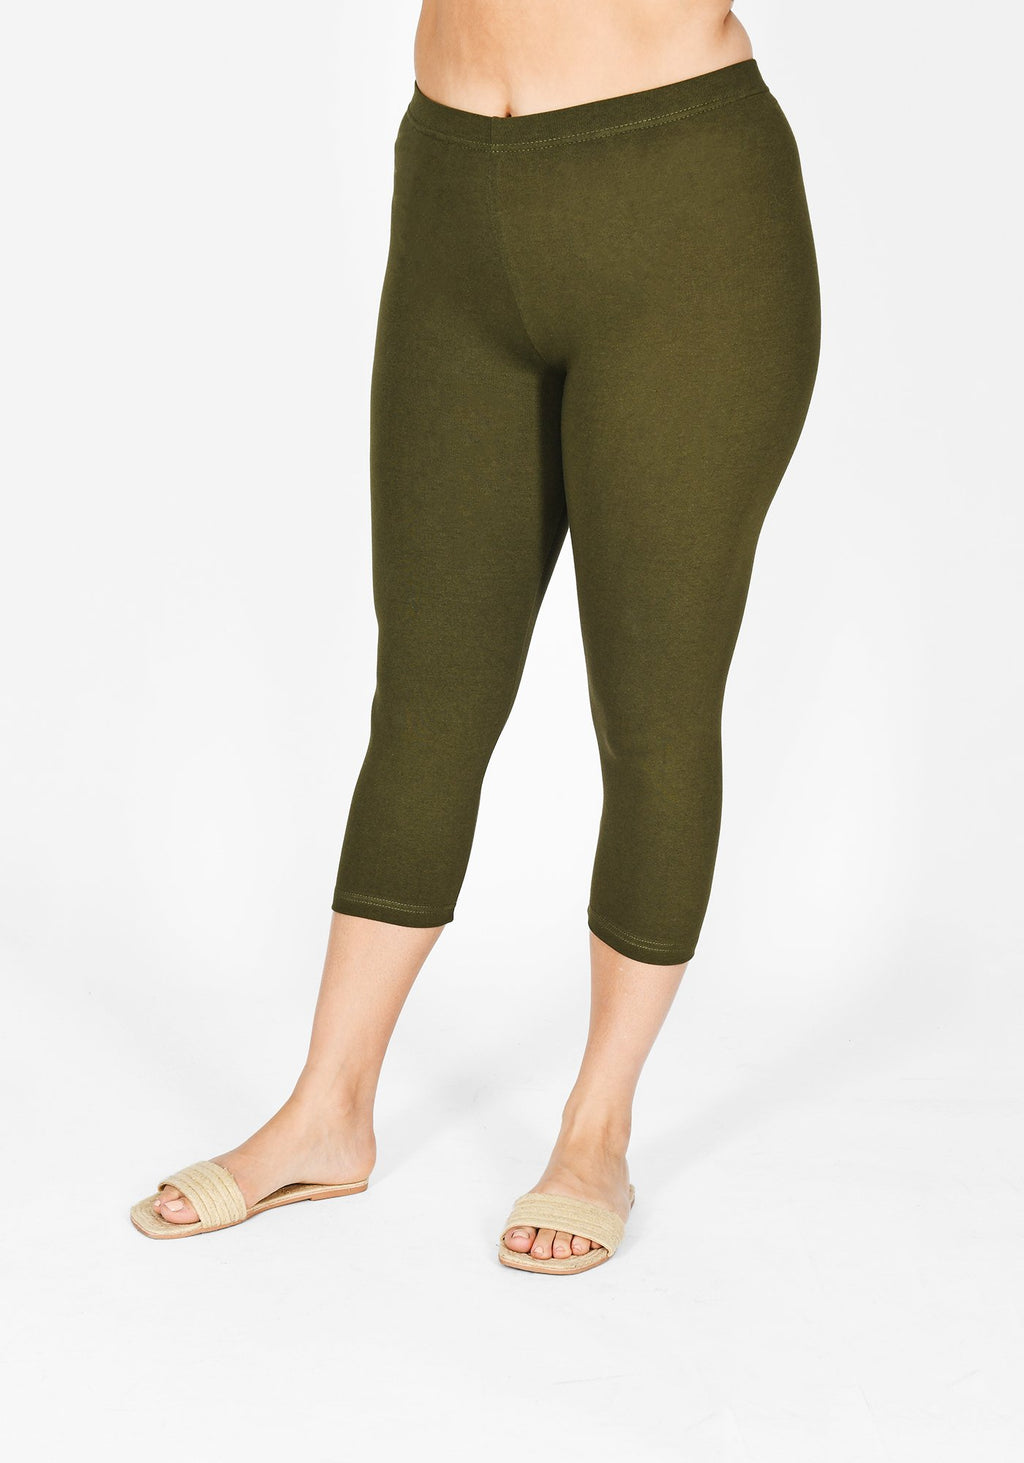 Plus Size Khaki Green Cropped Leggings 1